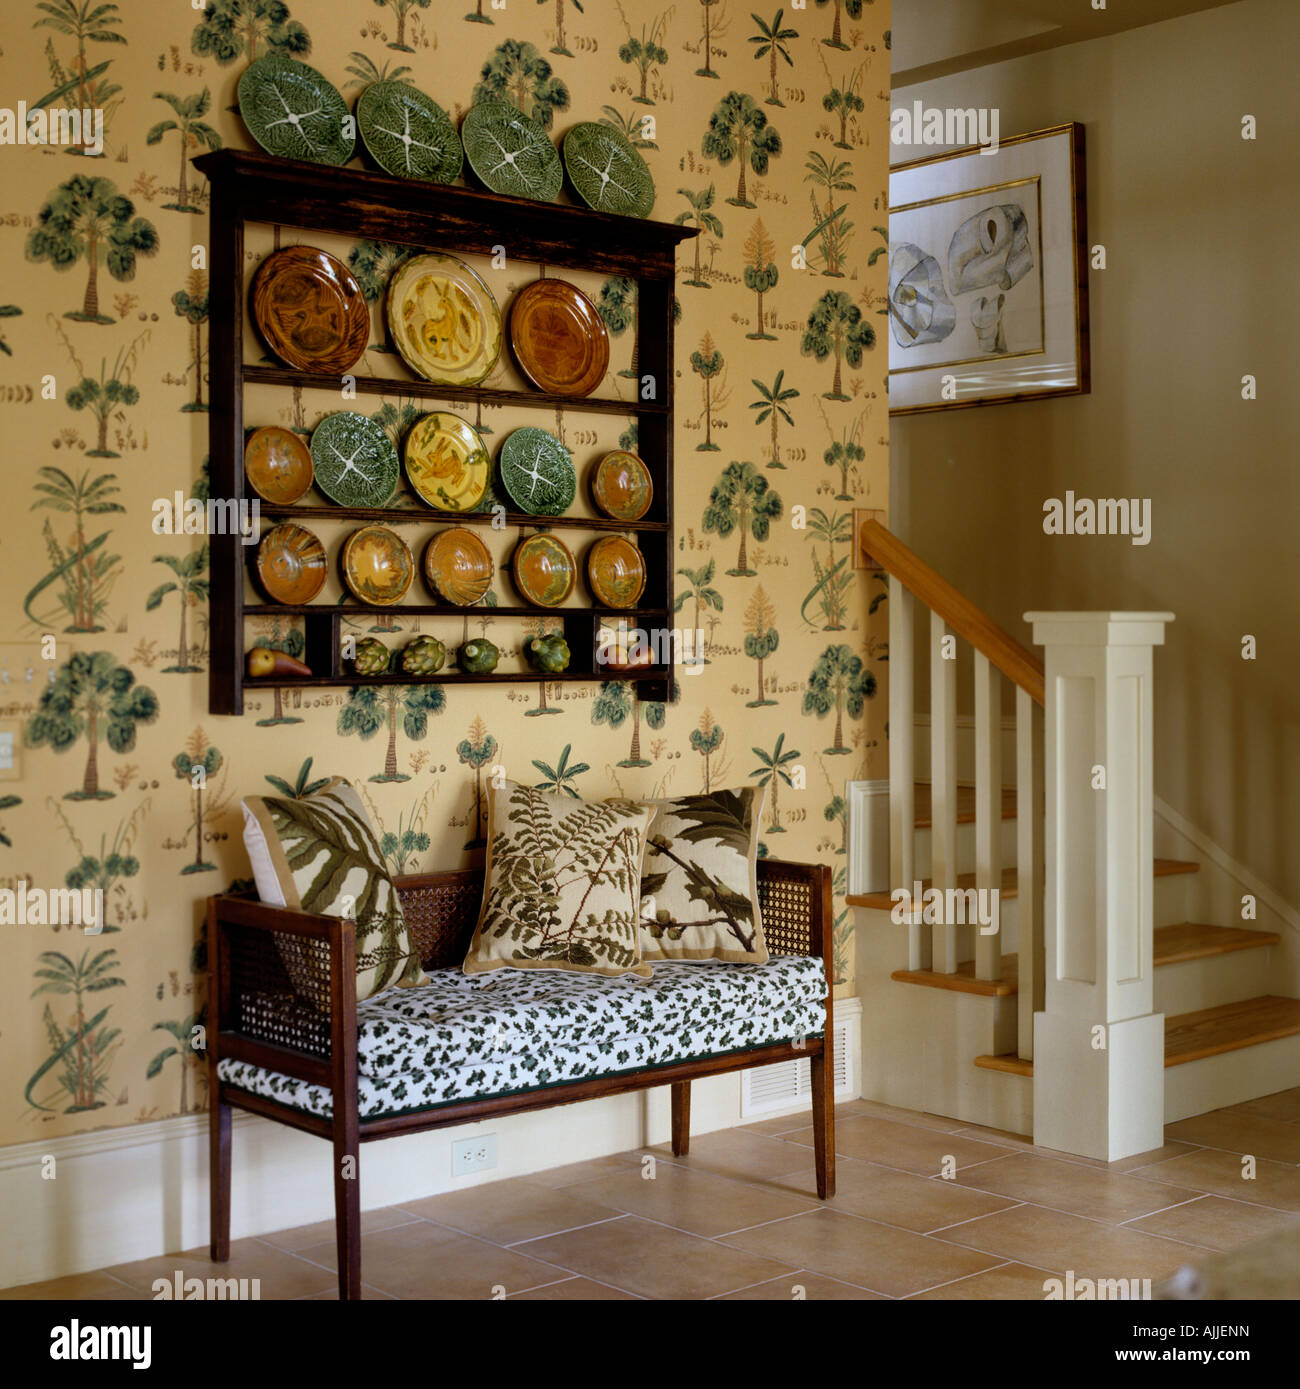 Hallway with Brunschwig wallpaper, plate display and upholstered settee. - Stock Image